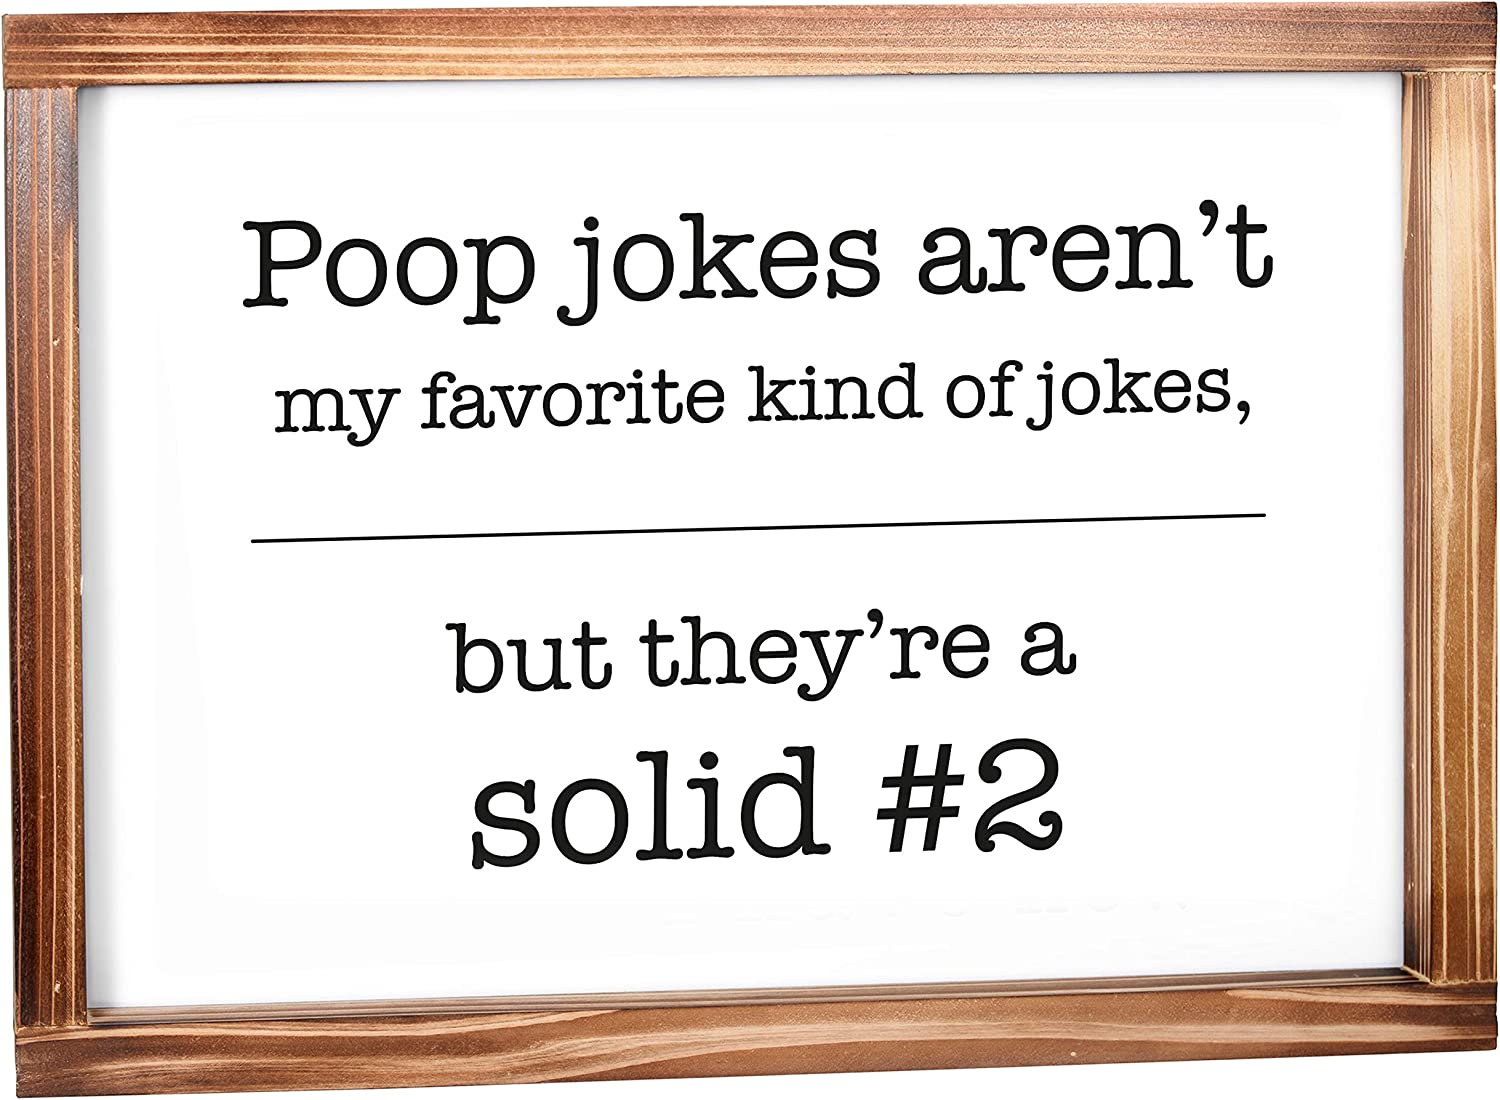 MAINEVENT Poop Jokes Sign - Funny Farmhouse Decor Sign, Cute Guest Bathroom Decor Wall Art, Rustic Home Decor, Modern Farmhouse Sign for Bathroom Wall with Funny Quotes 11x16 Inch